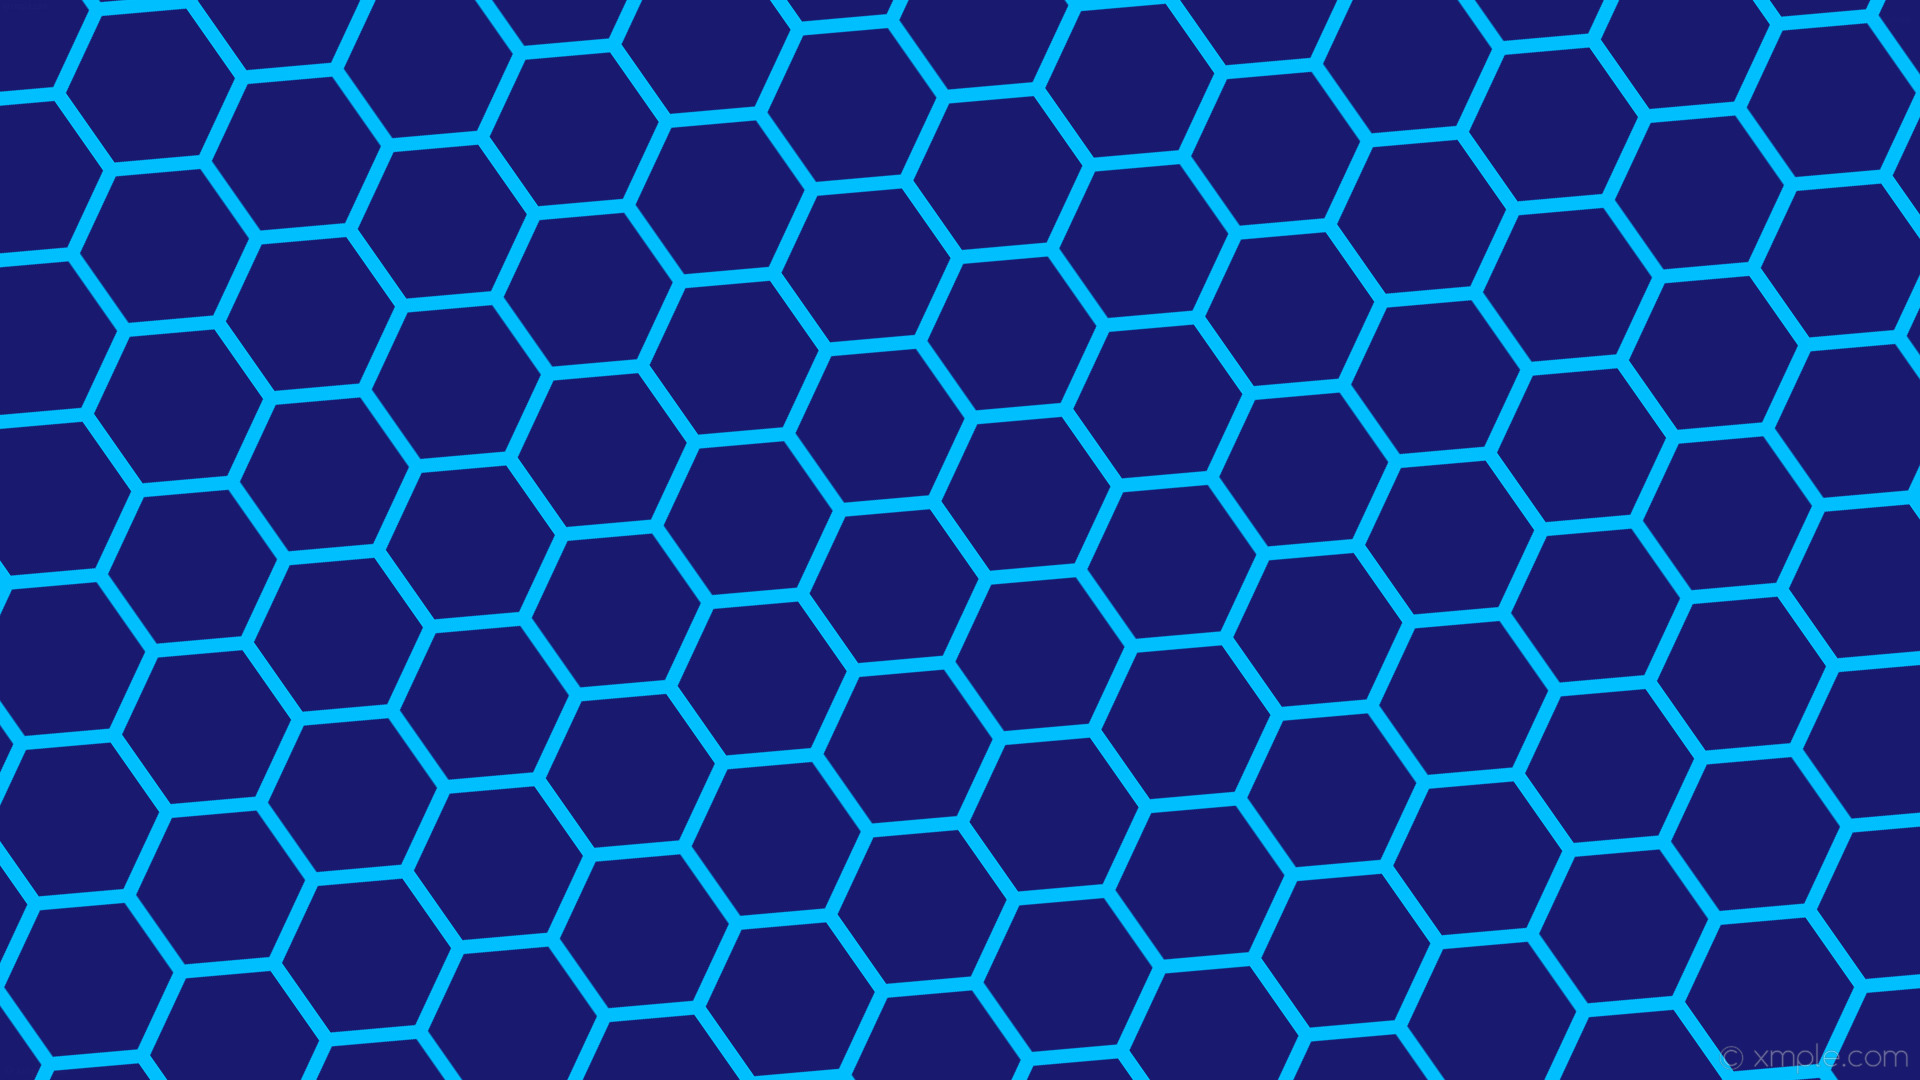 Res: 1920x1080, wallpaper hexagon blue honeycomb beehive midnight blue deep sky blue  #191970 #00bfff diagonal 35